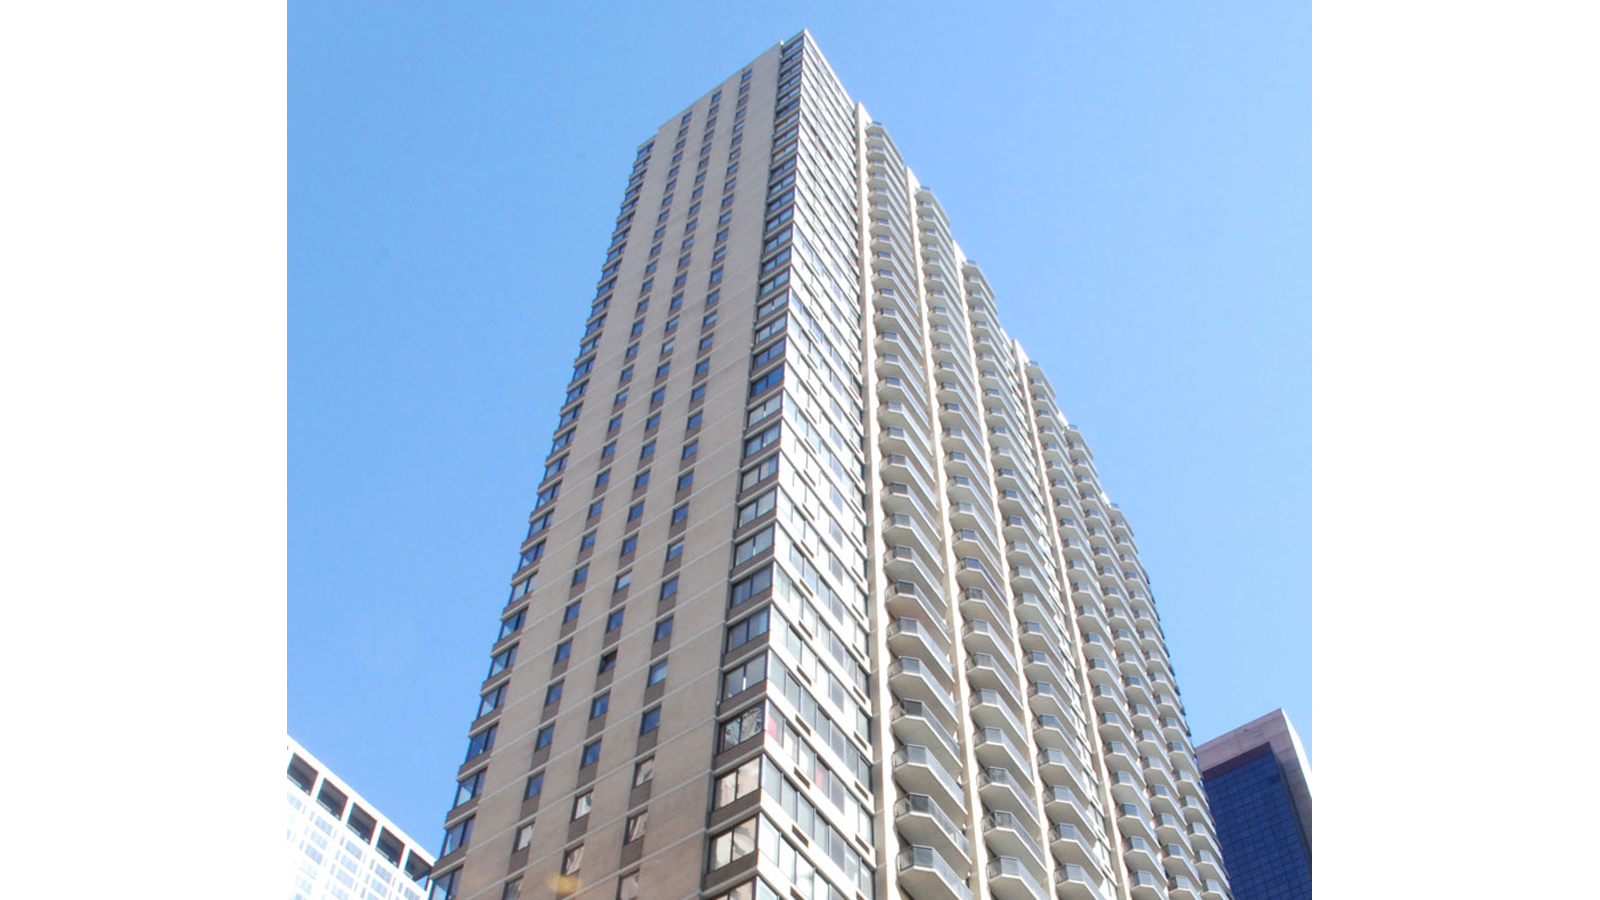 The Ritz Plaza, 235 West 48th Street